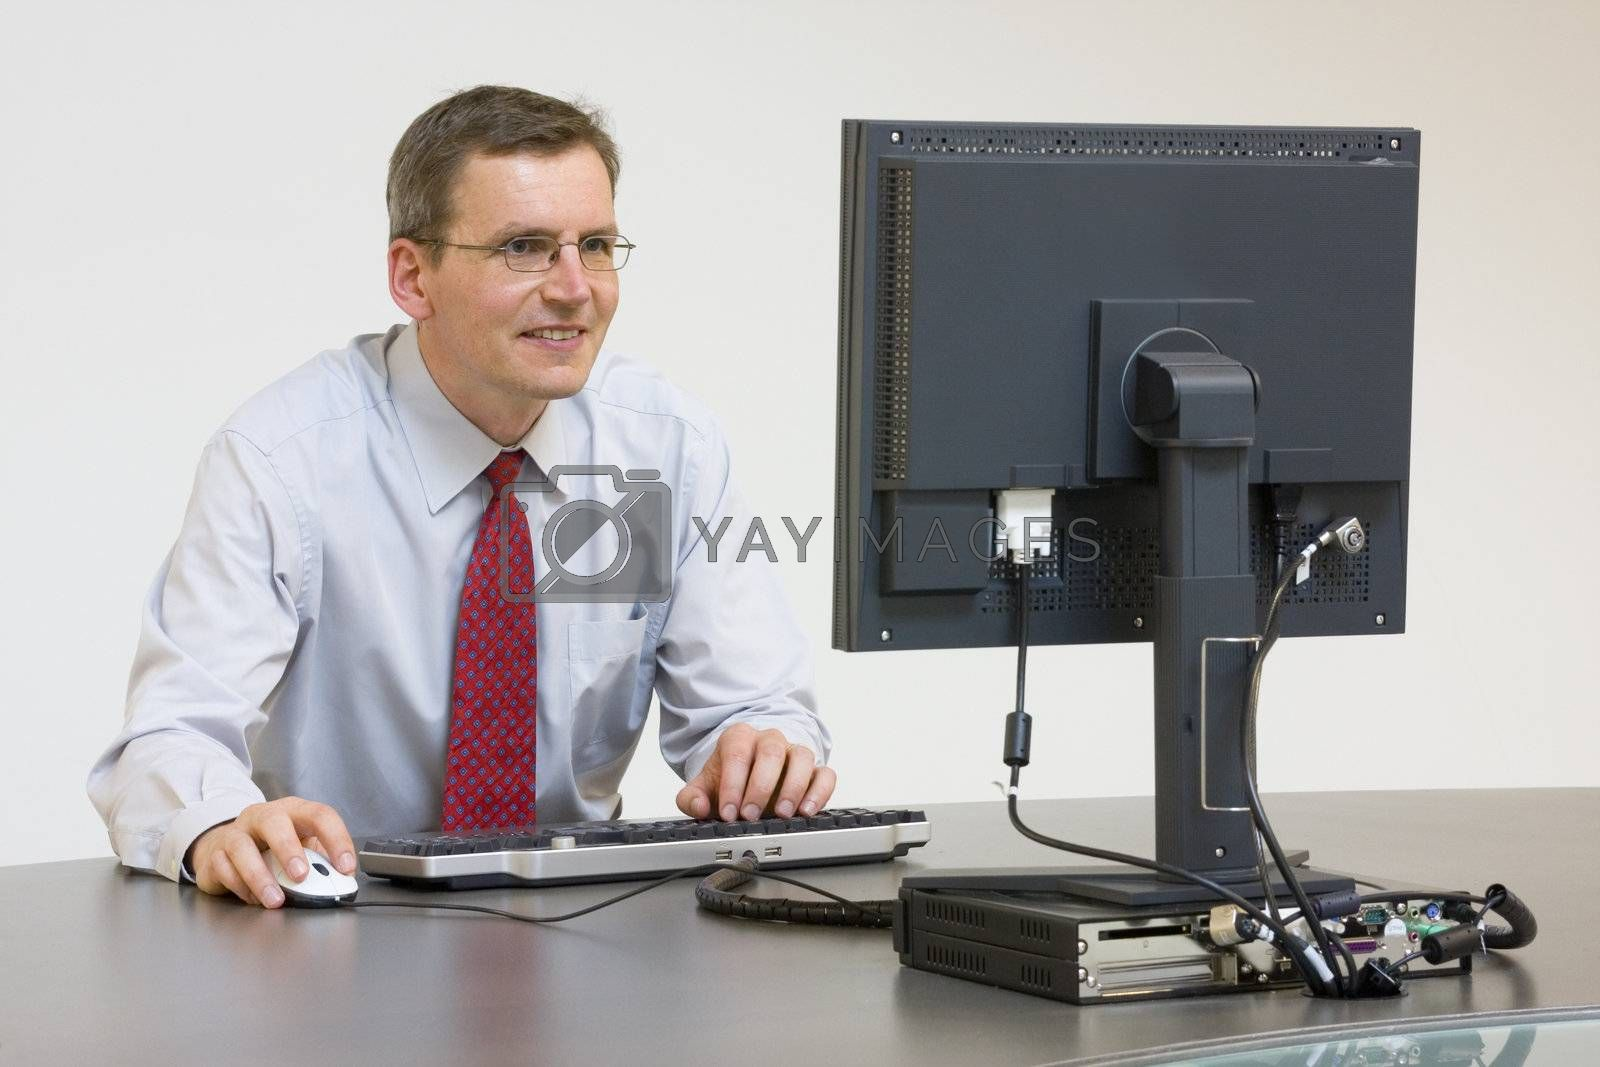 Smiling businessman working with computer in an office